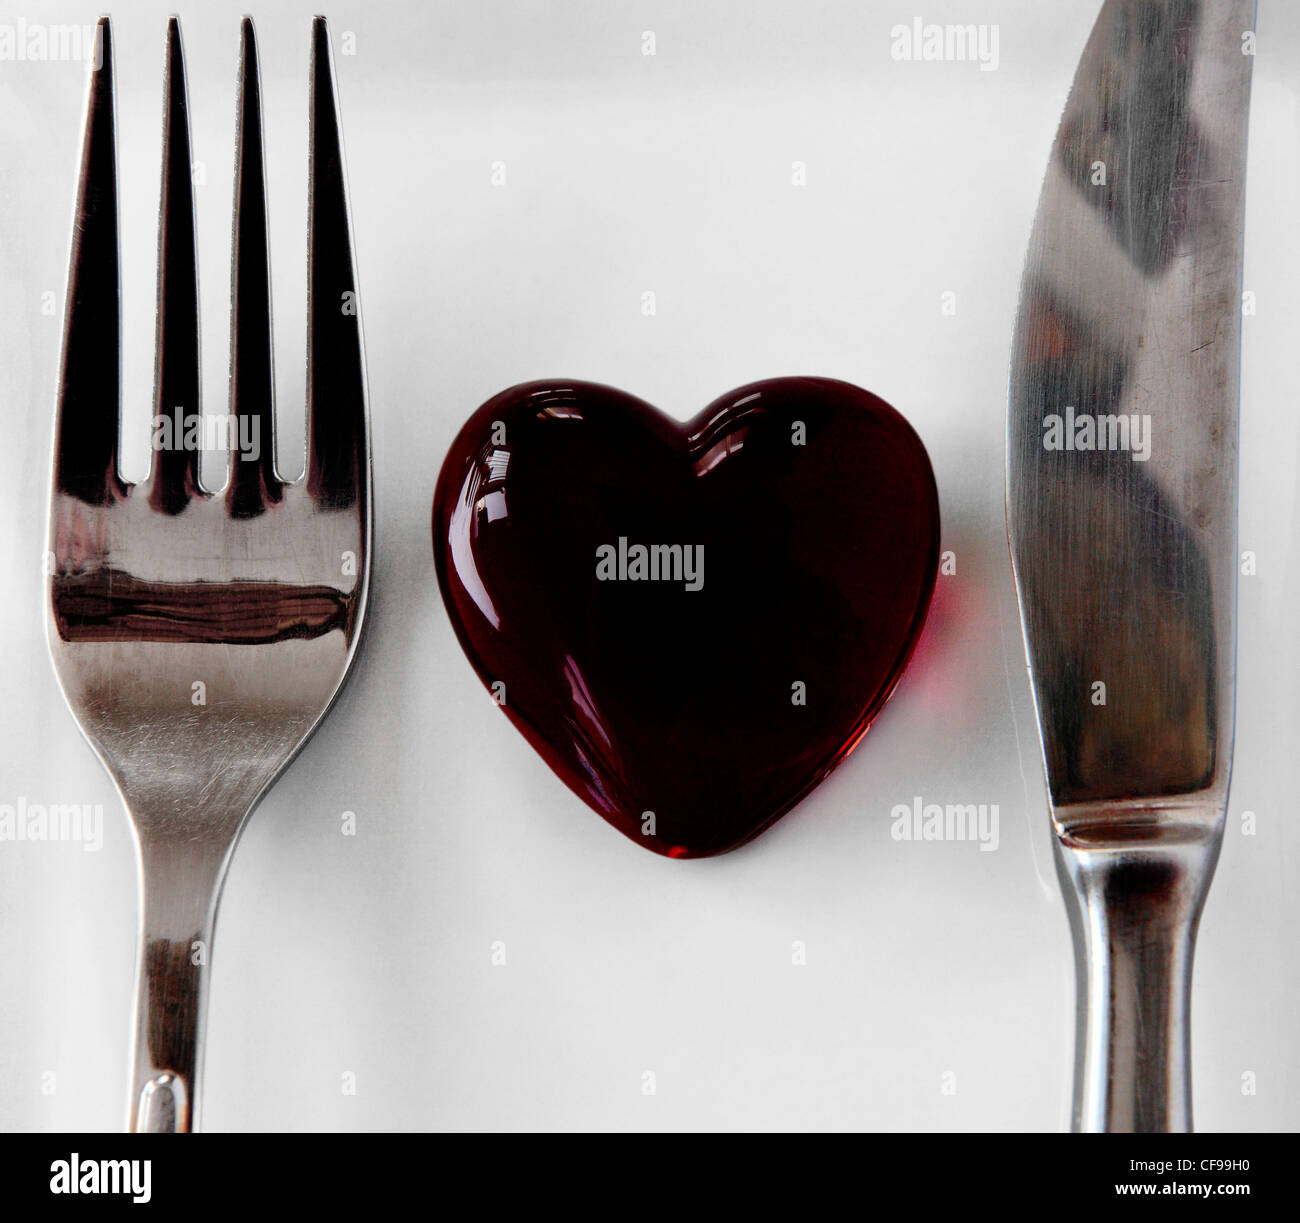 A heart placed between the fork and knife on a white background. The heart is a very blood like color. - Stock Image